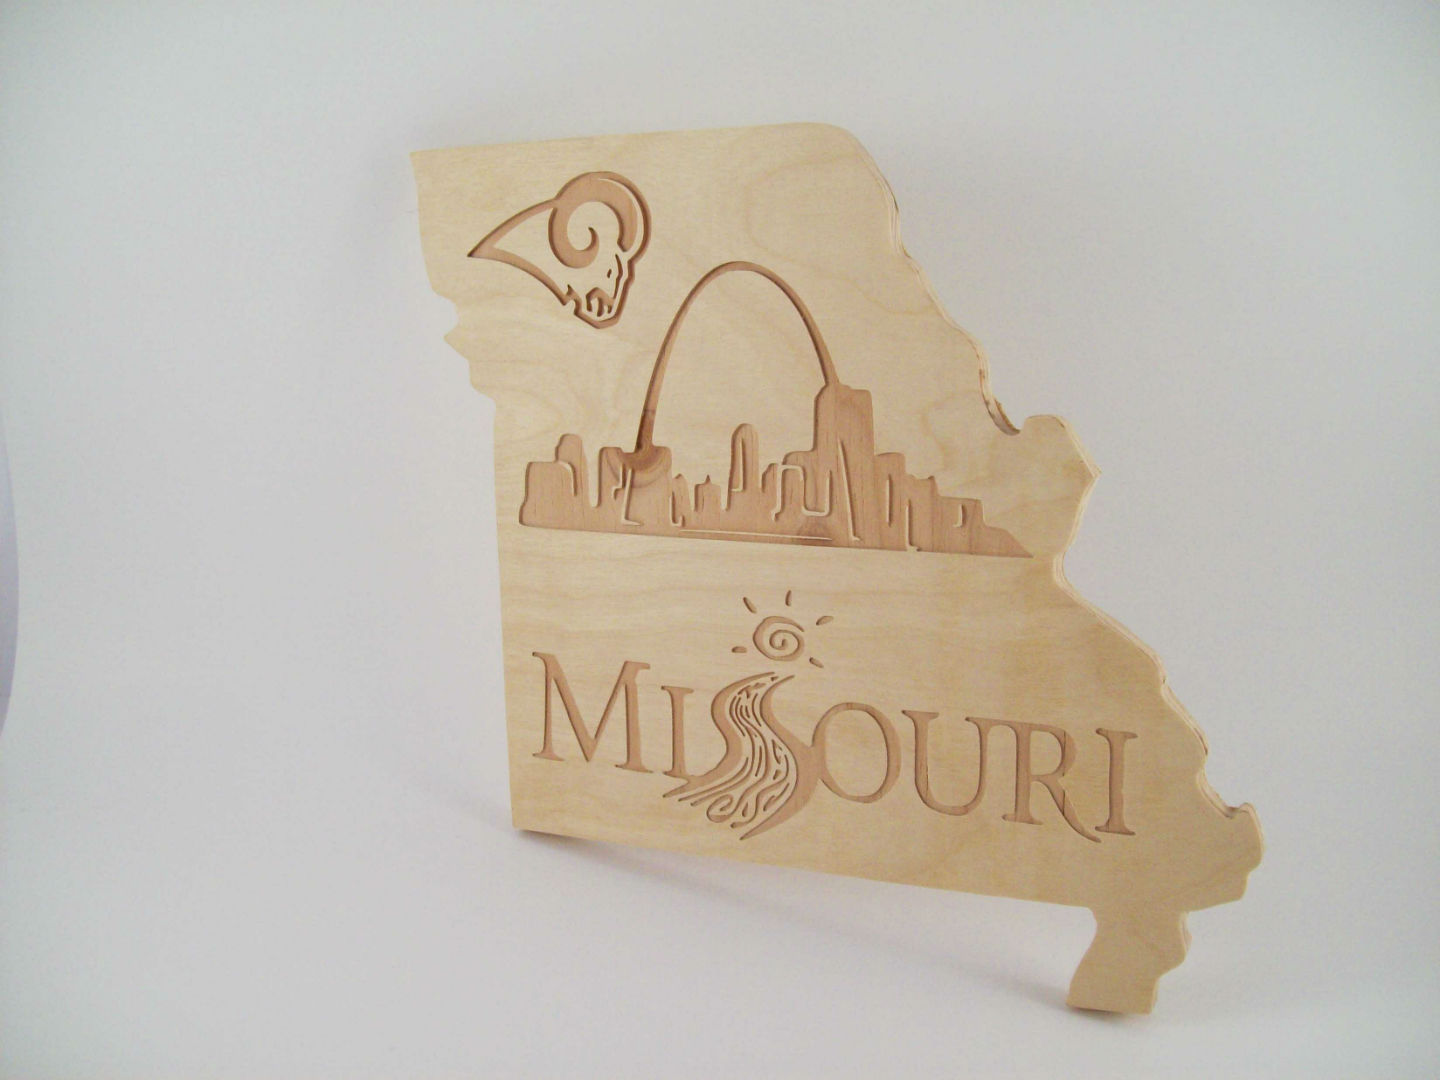 Dalton CNC Portfolio. State of Missouri cutout with Missouri Logos and skyline.